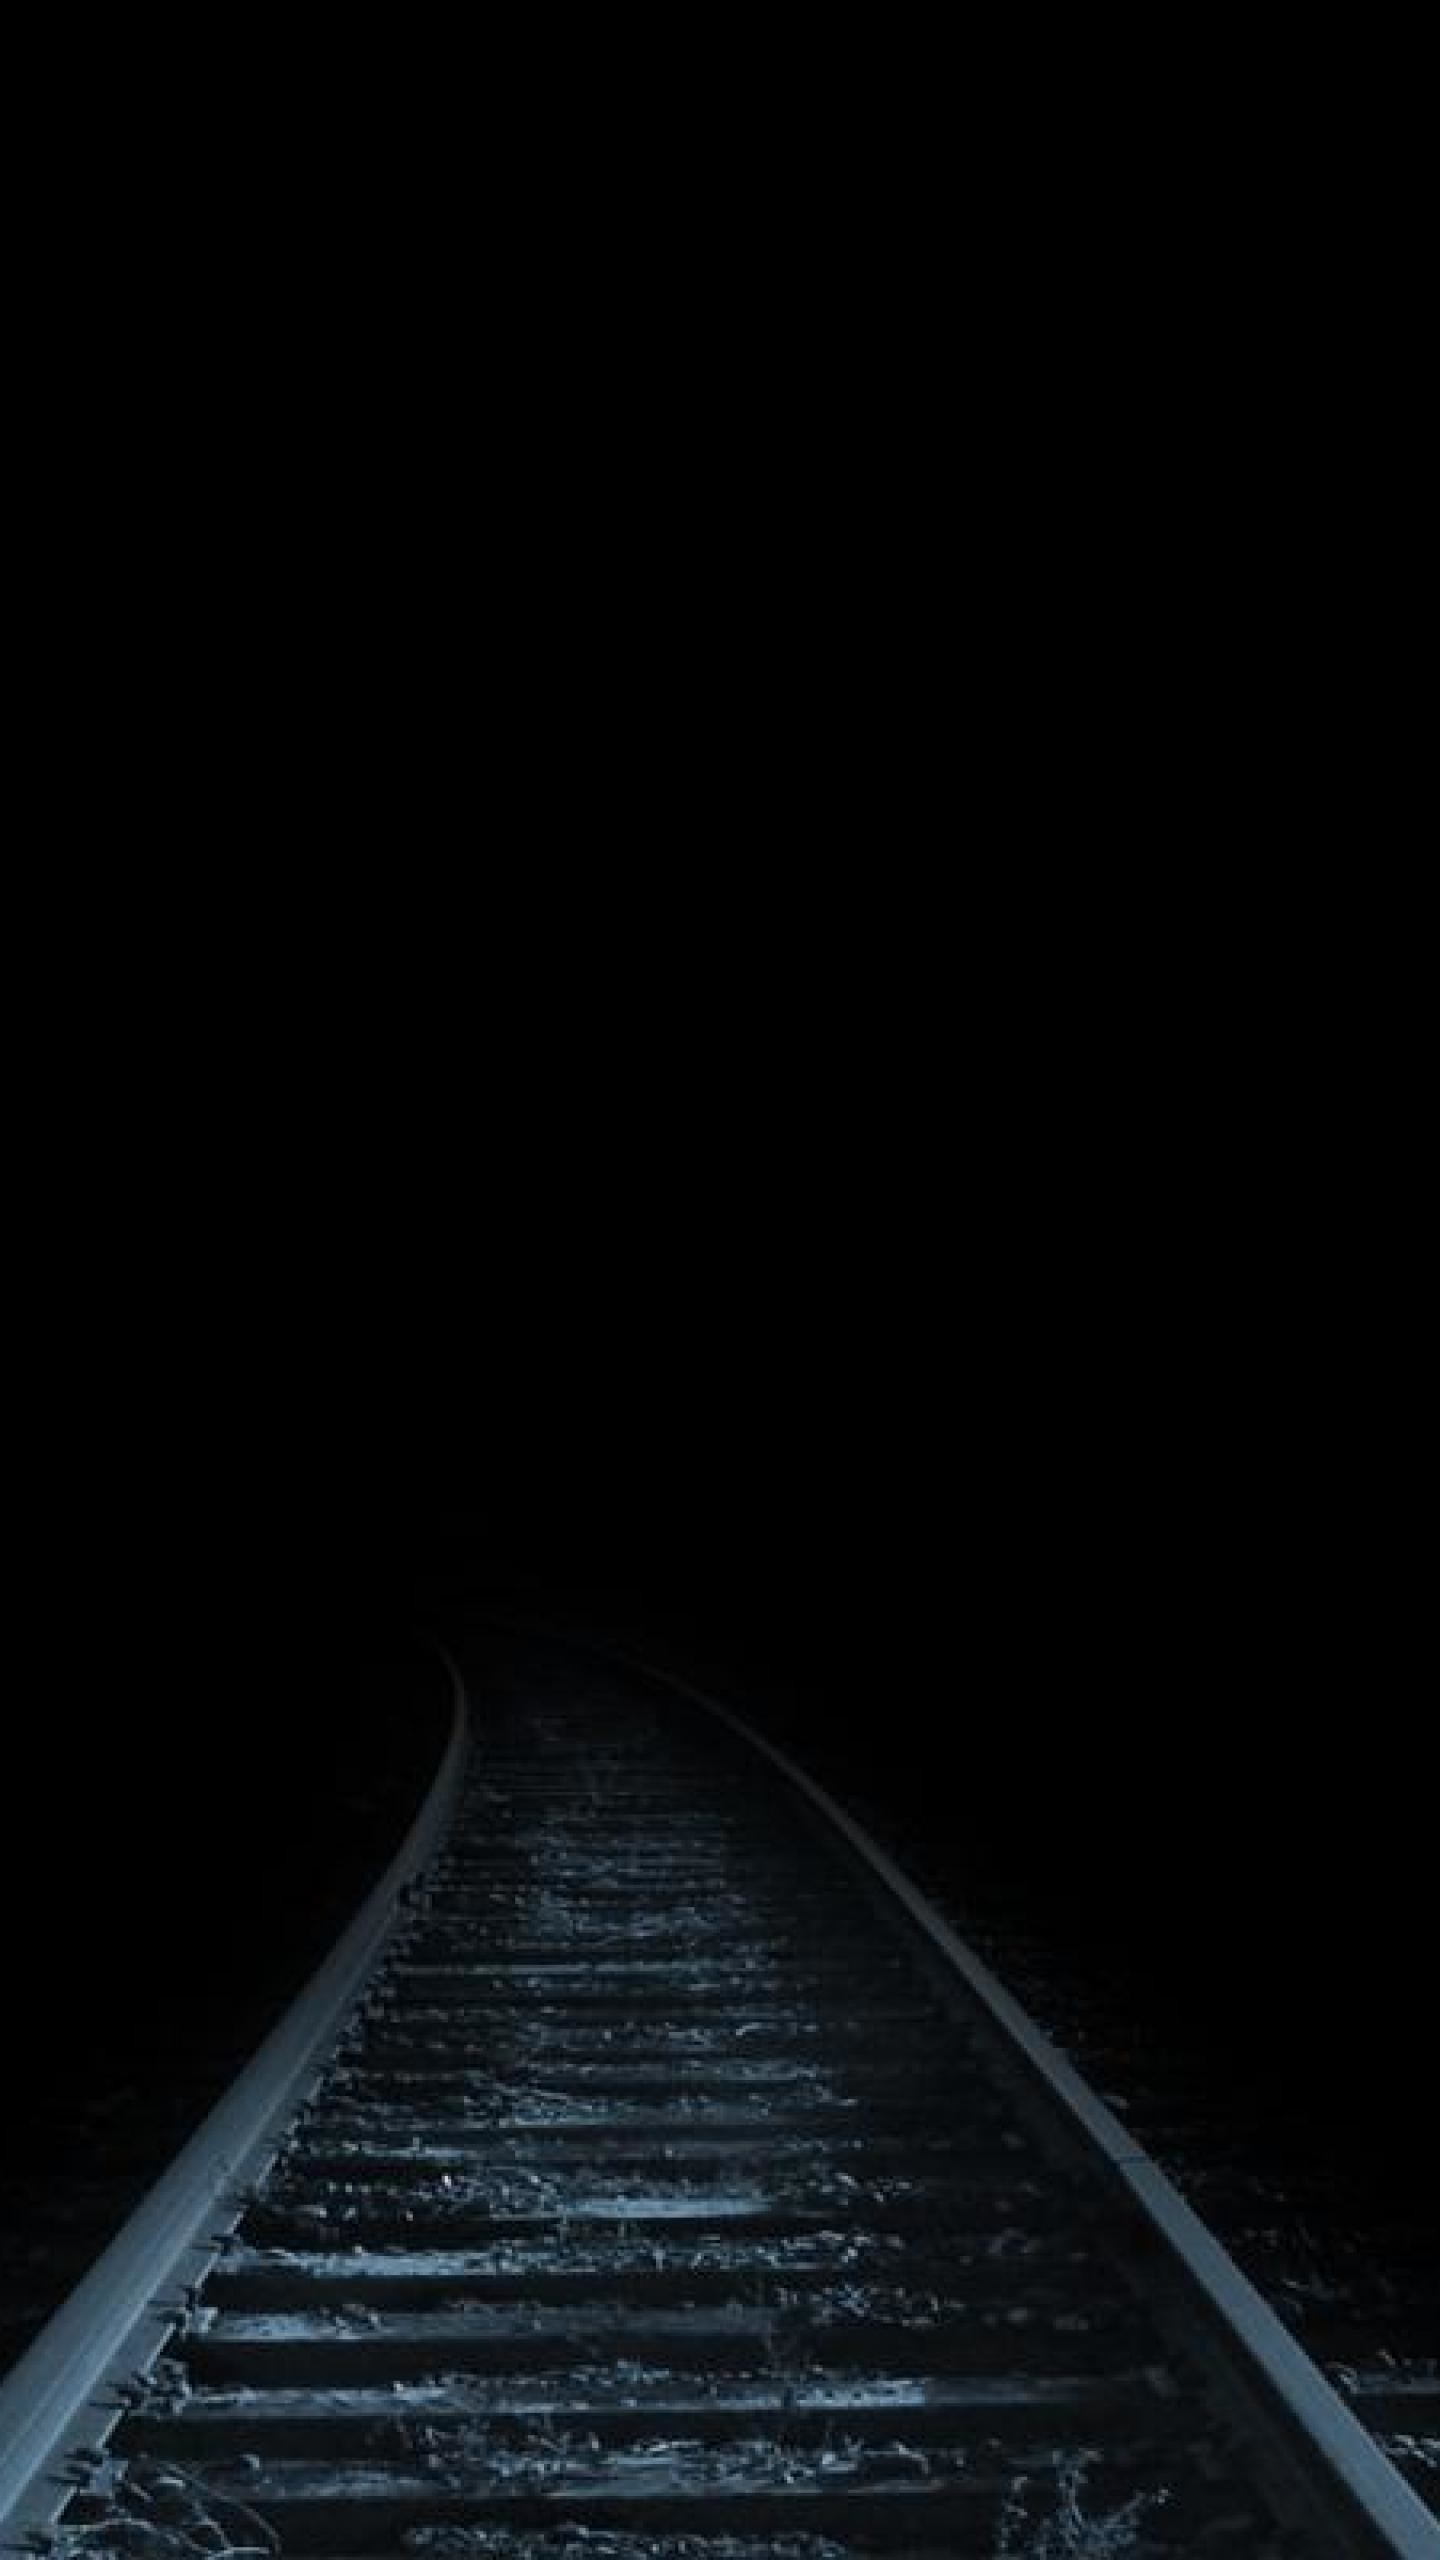 Res: 1440x2560, wallpapers for android and iphone, download dark minimal phone background